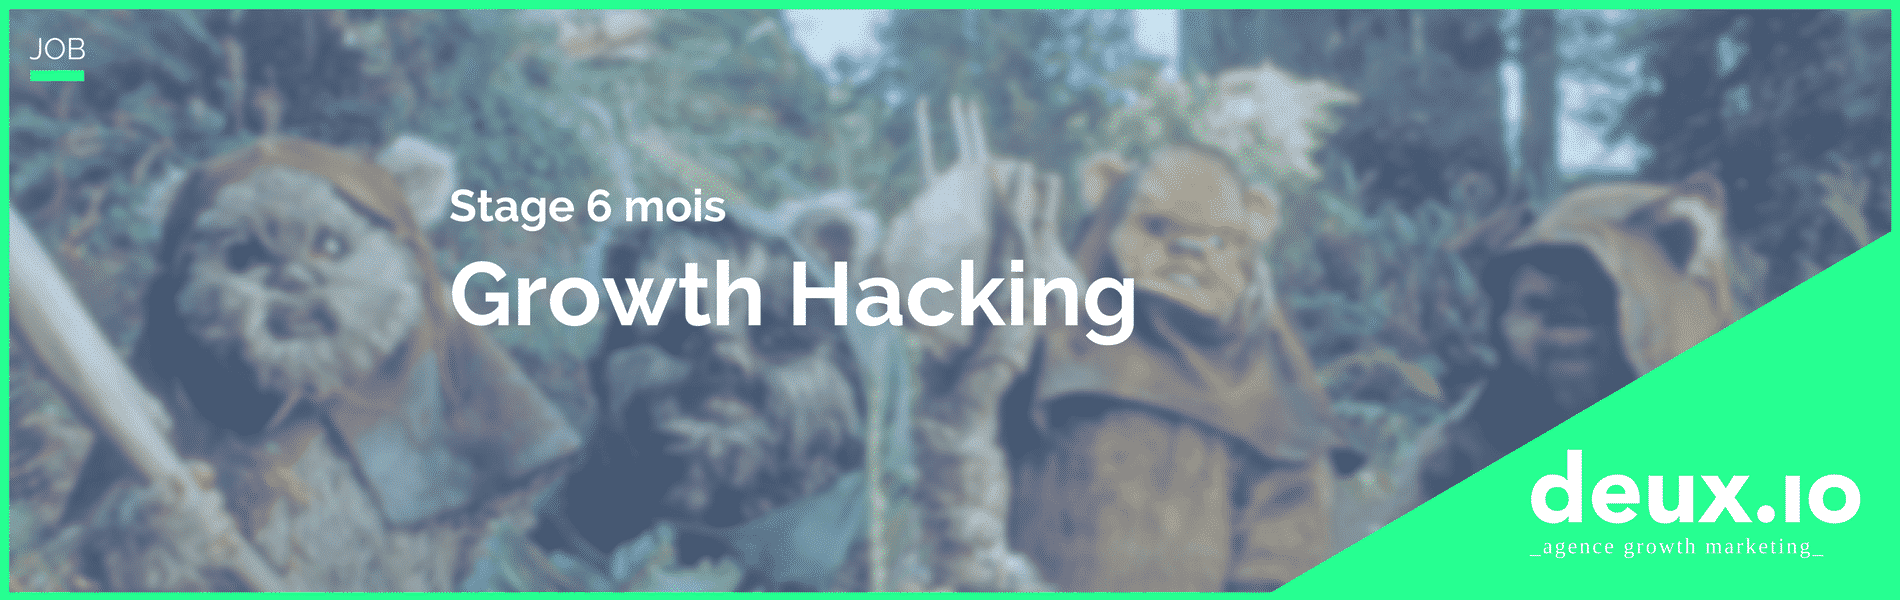 stage growth hacking deuxio